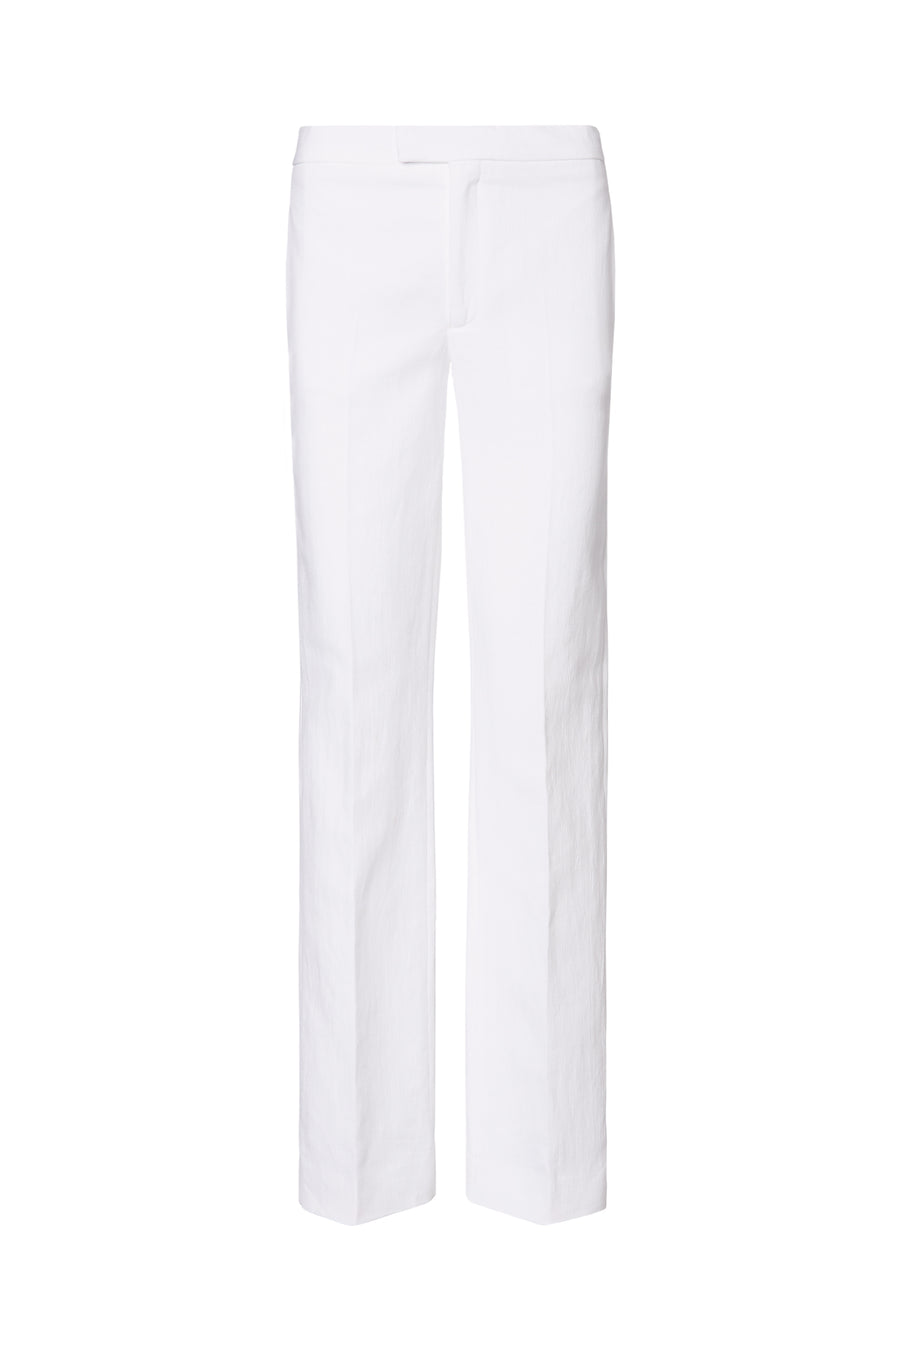 TAILORED TROUSER, WHITE color